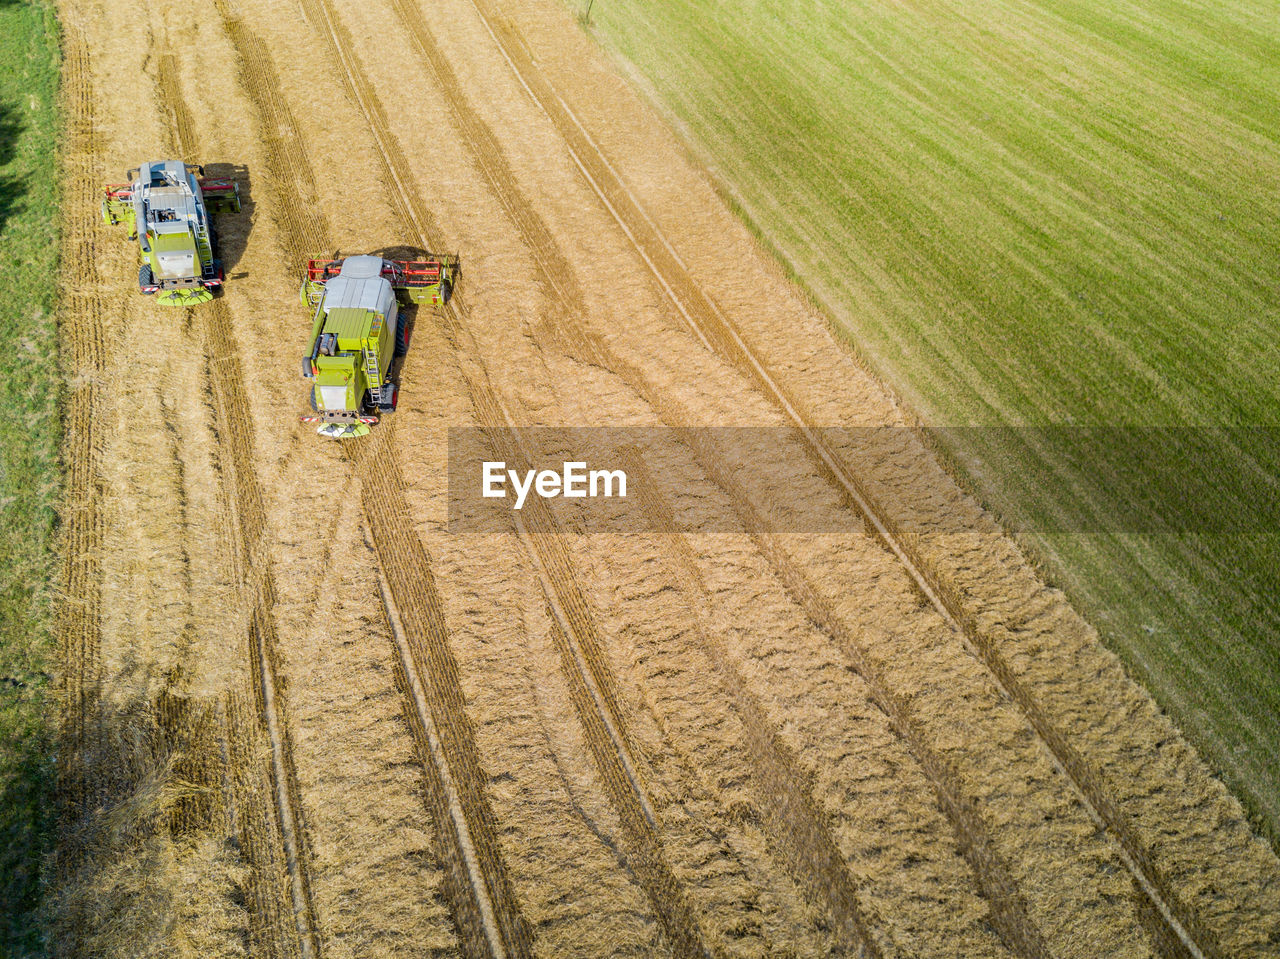 High Angle View Of Tractors In Field